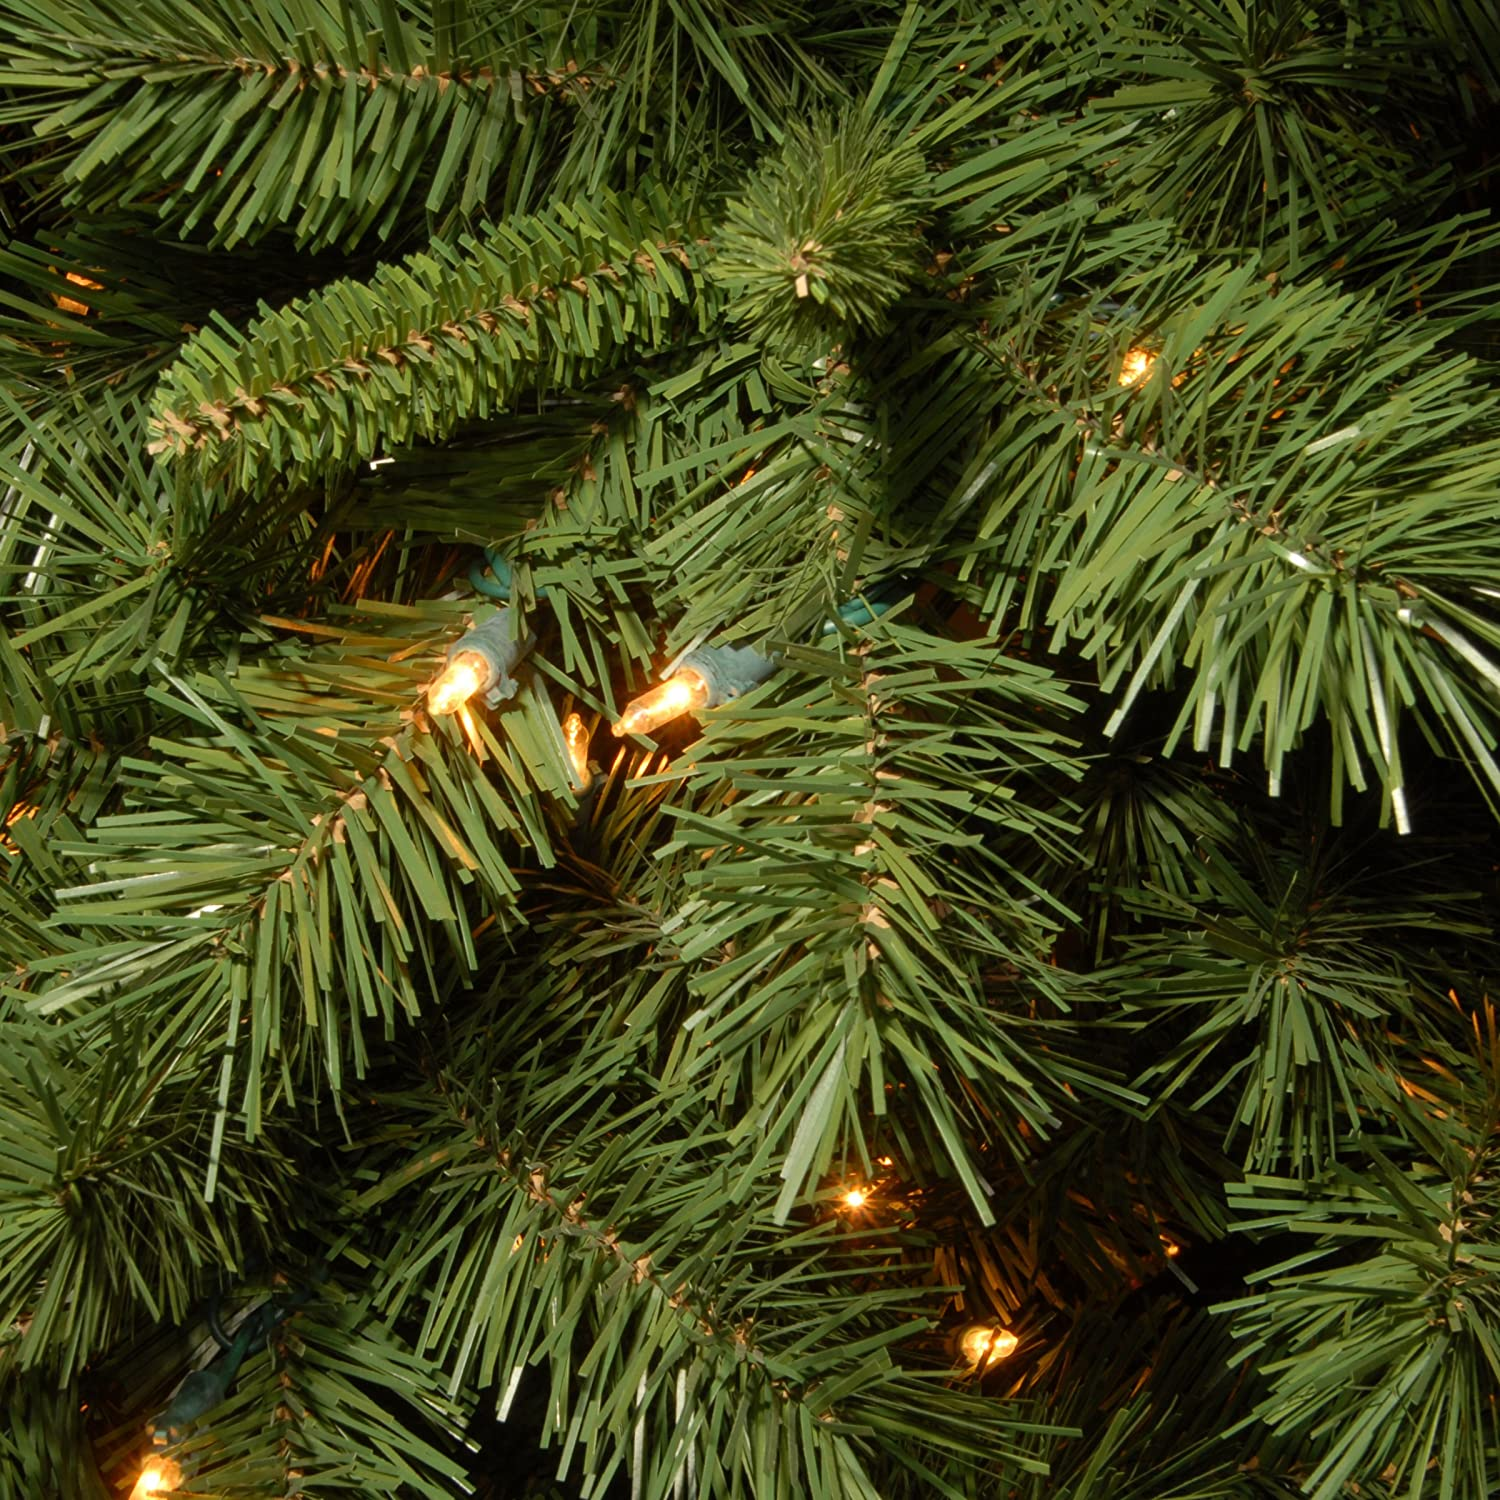 Amazon.com: National Tree 7.5 Foot Lehigh Valley Pine Slim Tree with ...